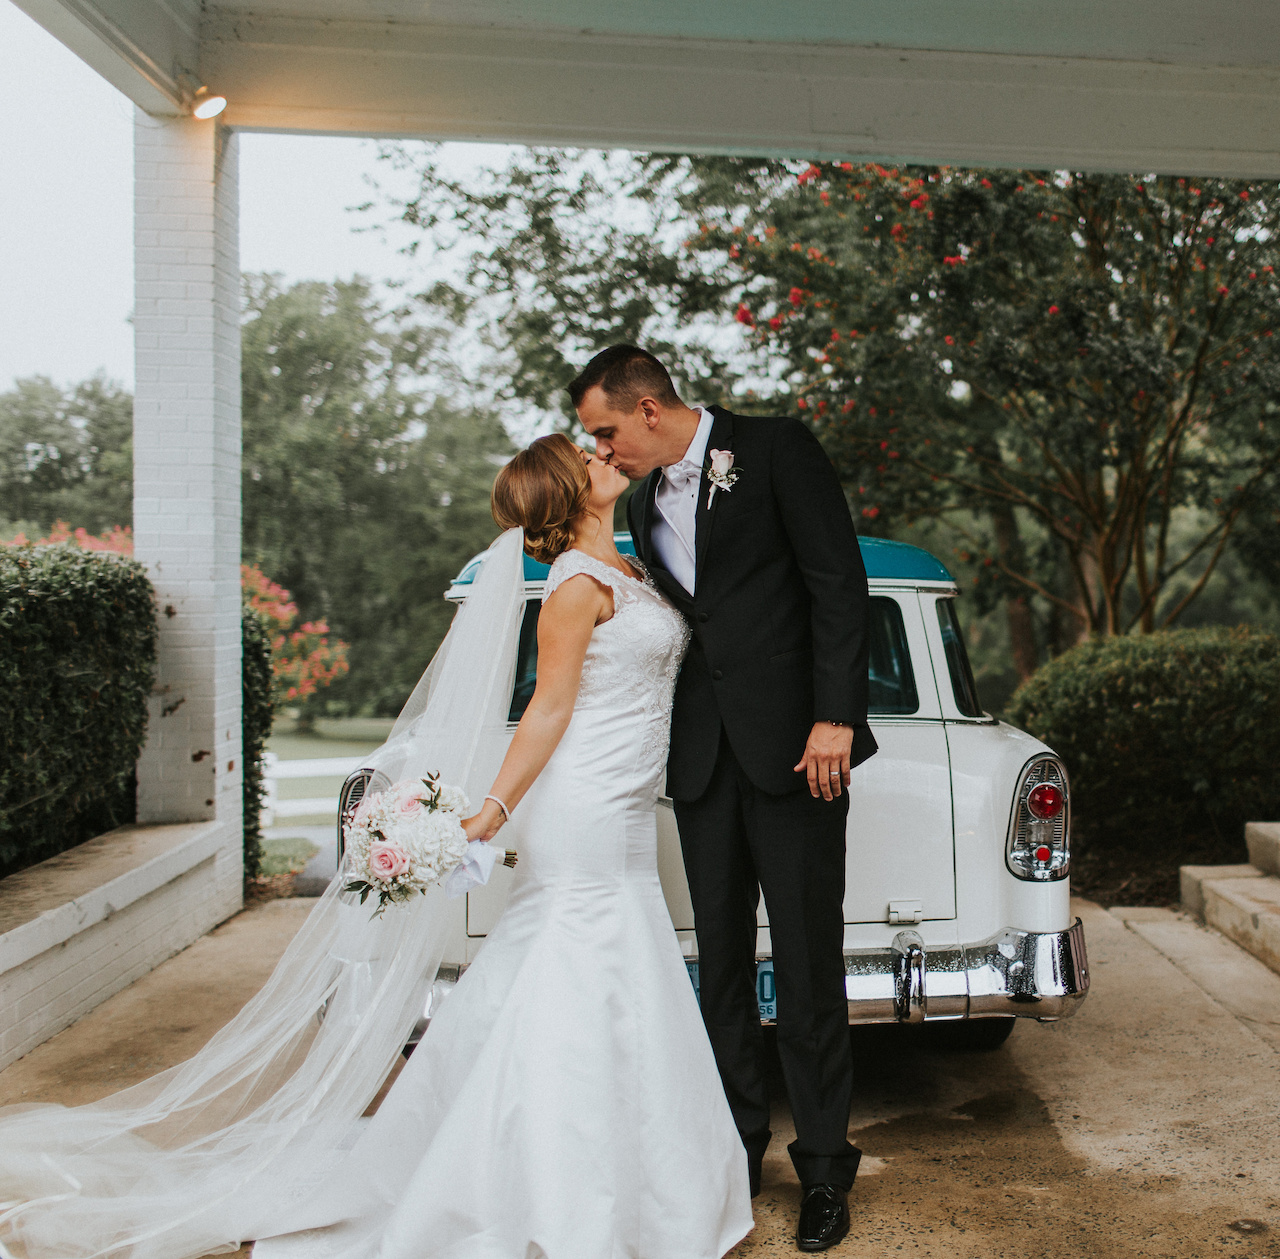 Murdock Wedding|styleblueprint.com